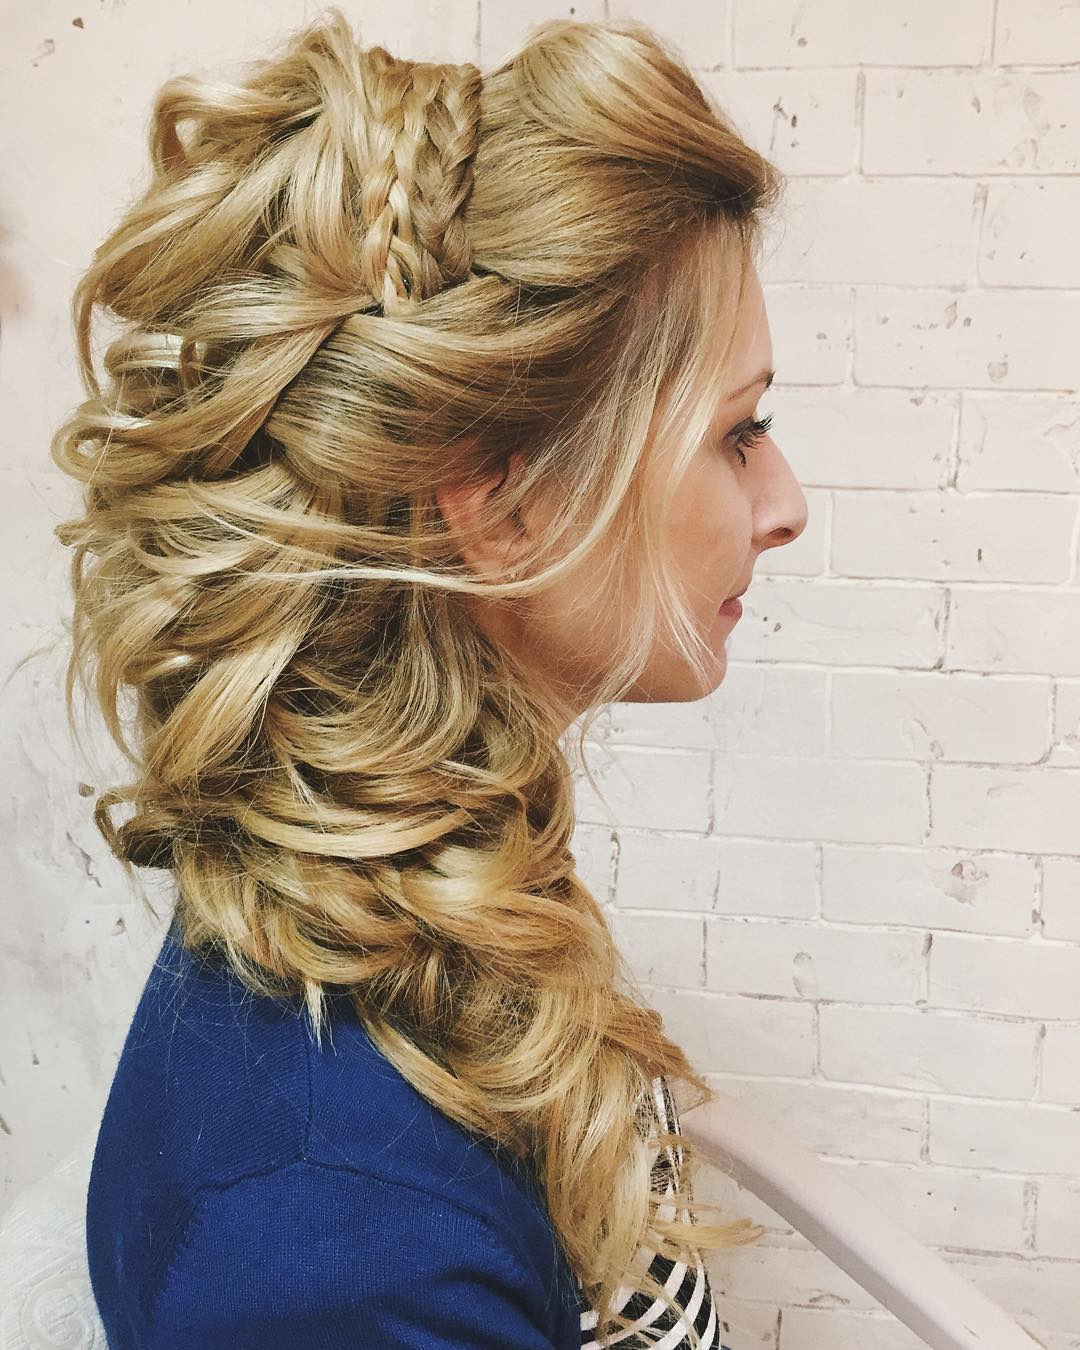 Wedding Hairstyles Braid: 10 Lavish Wedding Hairstyles For Long Hair